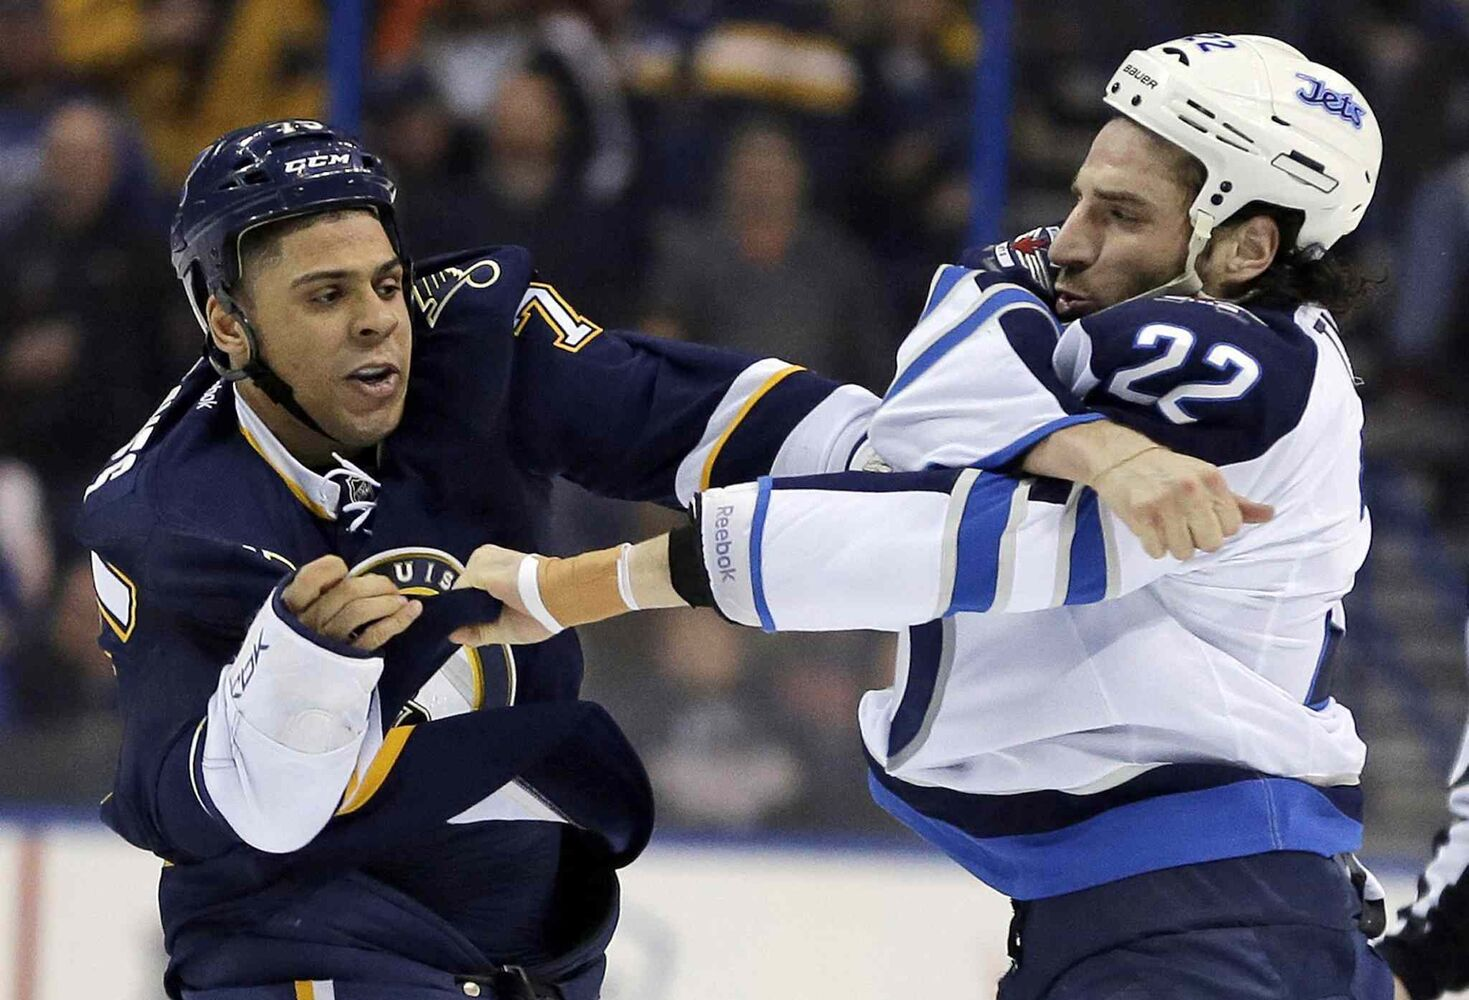 St. Louis Blues' Ryan Reaves, left, and Winnipeg Jets' Chris Thorburn have a first-period fight. (Jeff Roberson / The Associated Press)